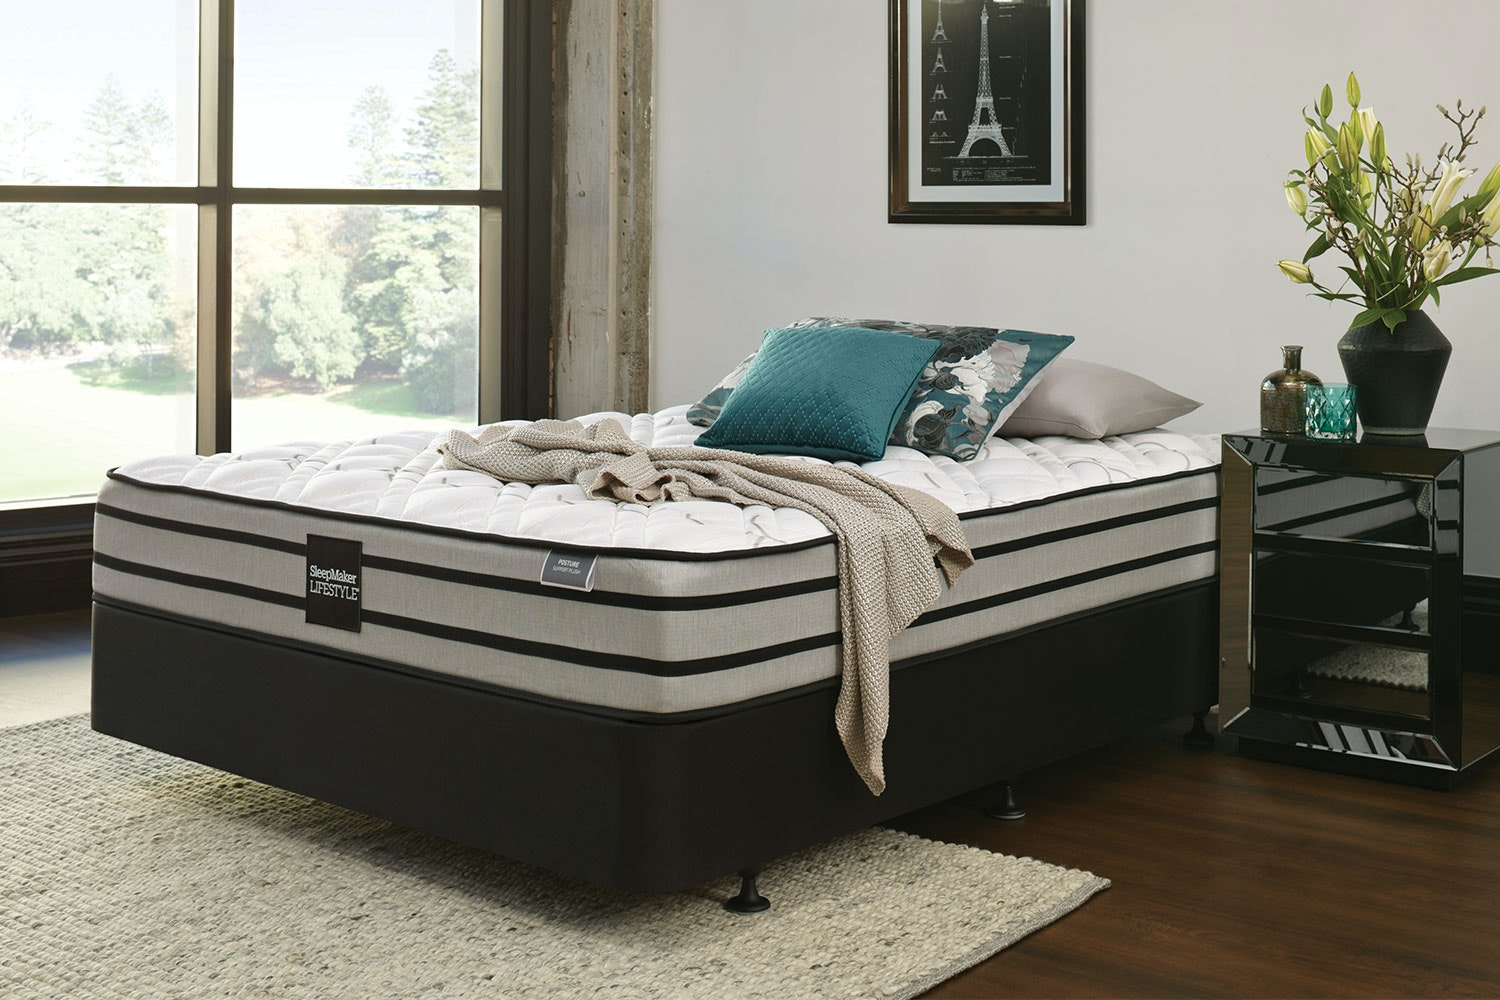 Posture Plus Queen Bed by SleepMaker